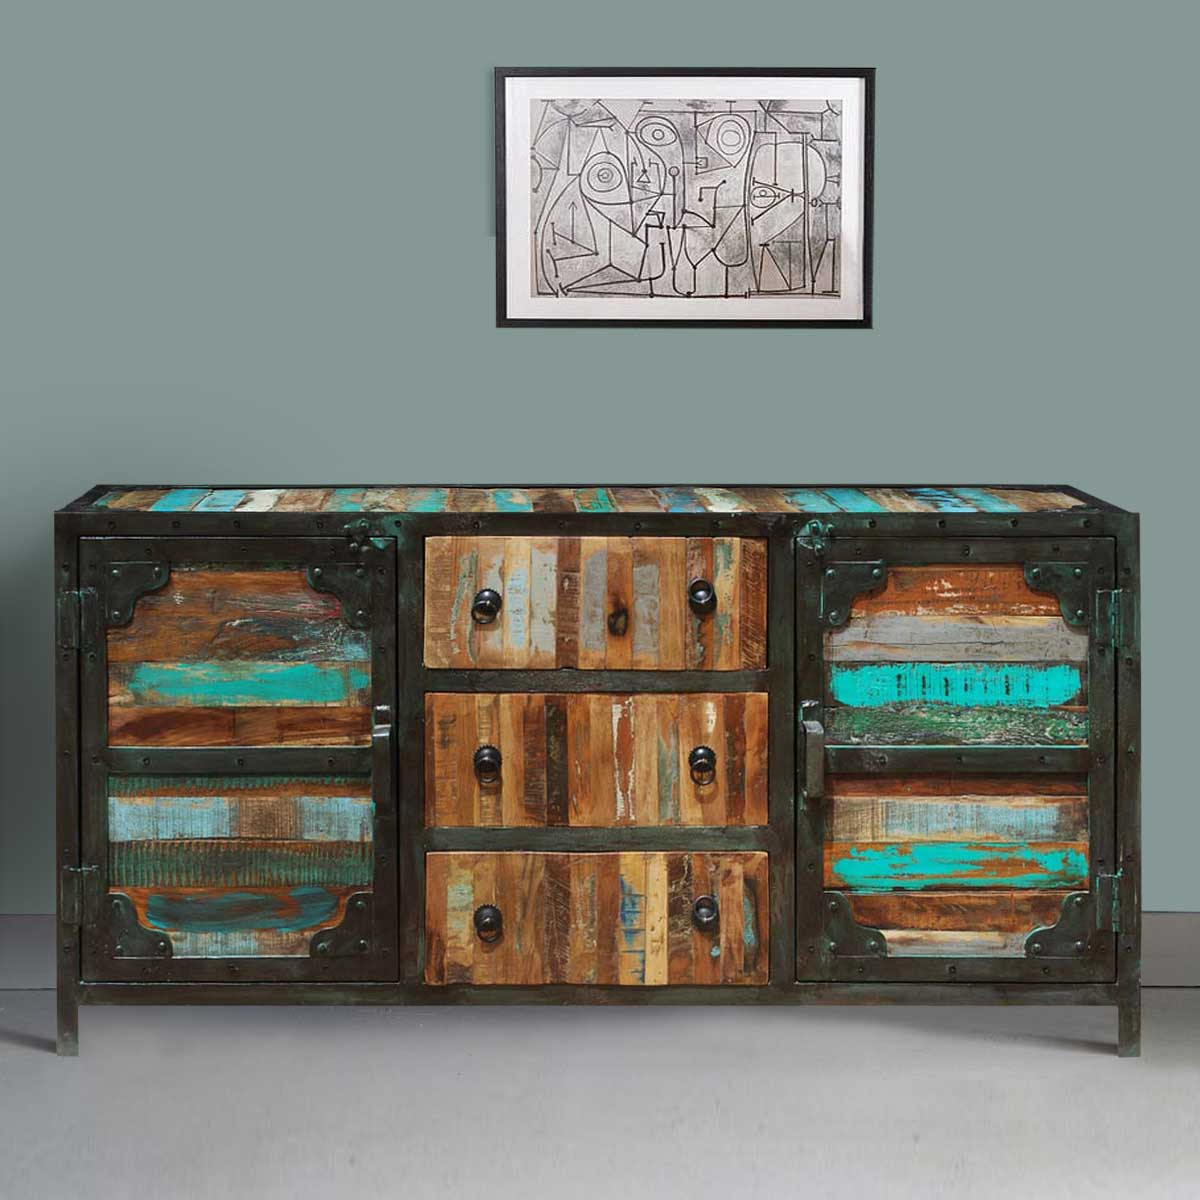 Allenhurst Rustic Reclaimed Wood 3 Drawer Industrial Sideboard Buffet Intended For Industrial Style 3 Drawer Buffets (View 2 of 20)